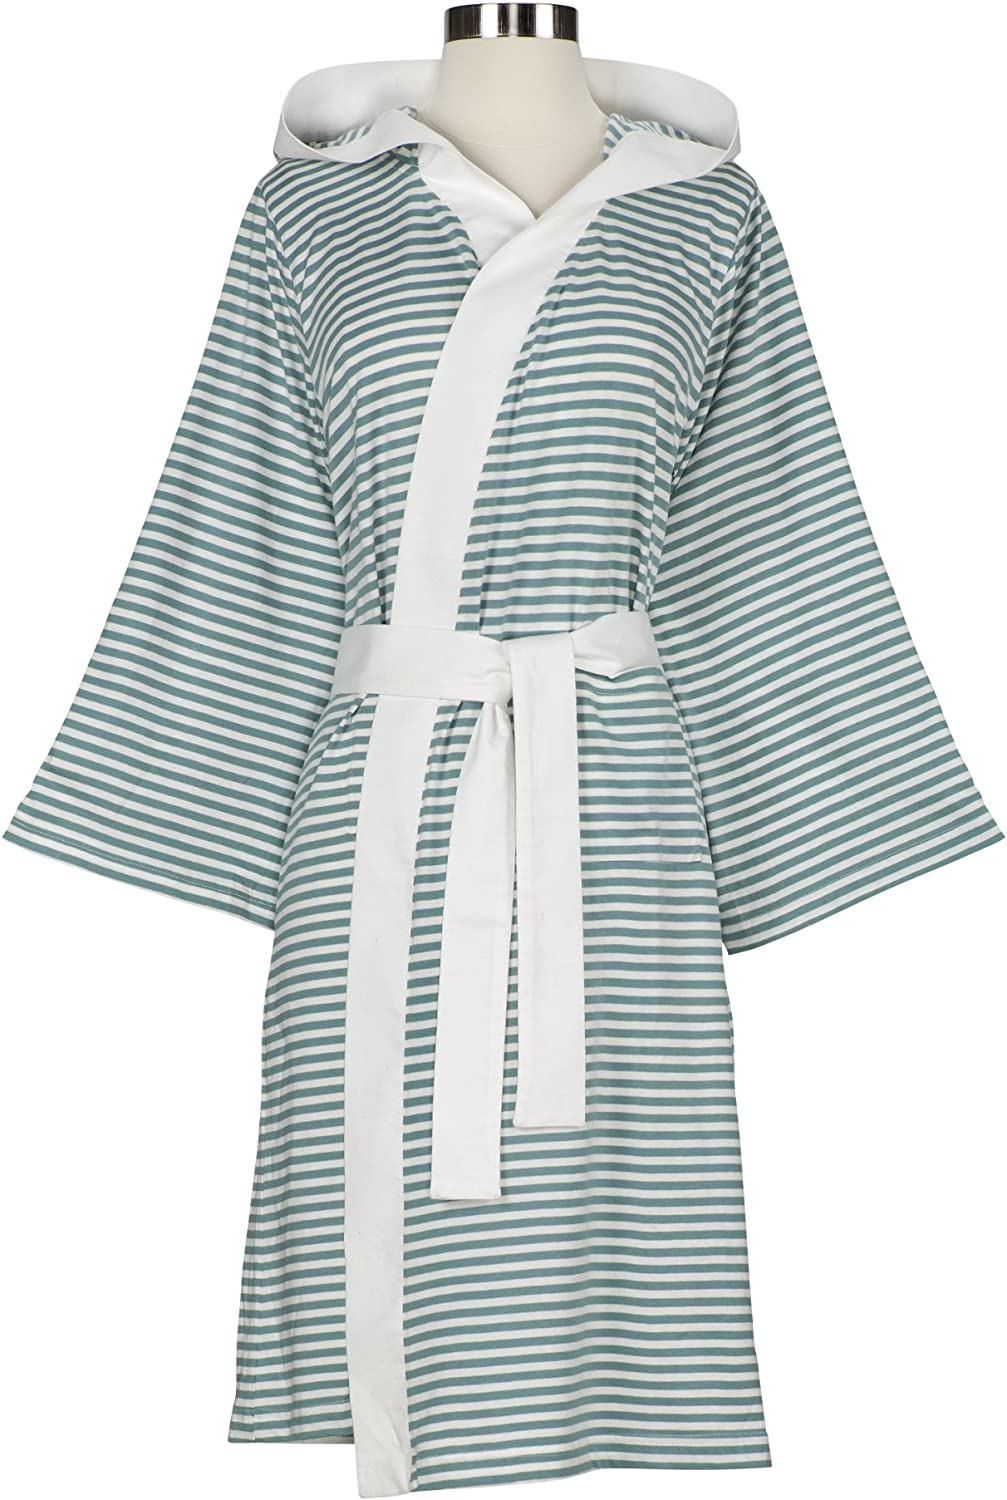 Nine Space Knee-Length Striped Jersey Knit half Robe Lar White Teal low-pricing